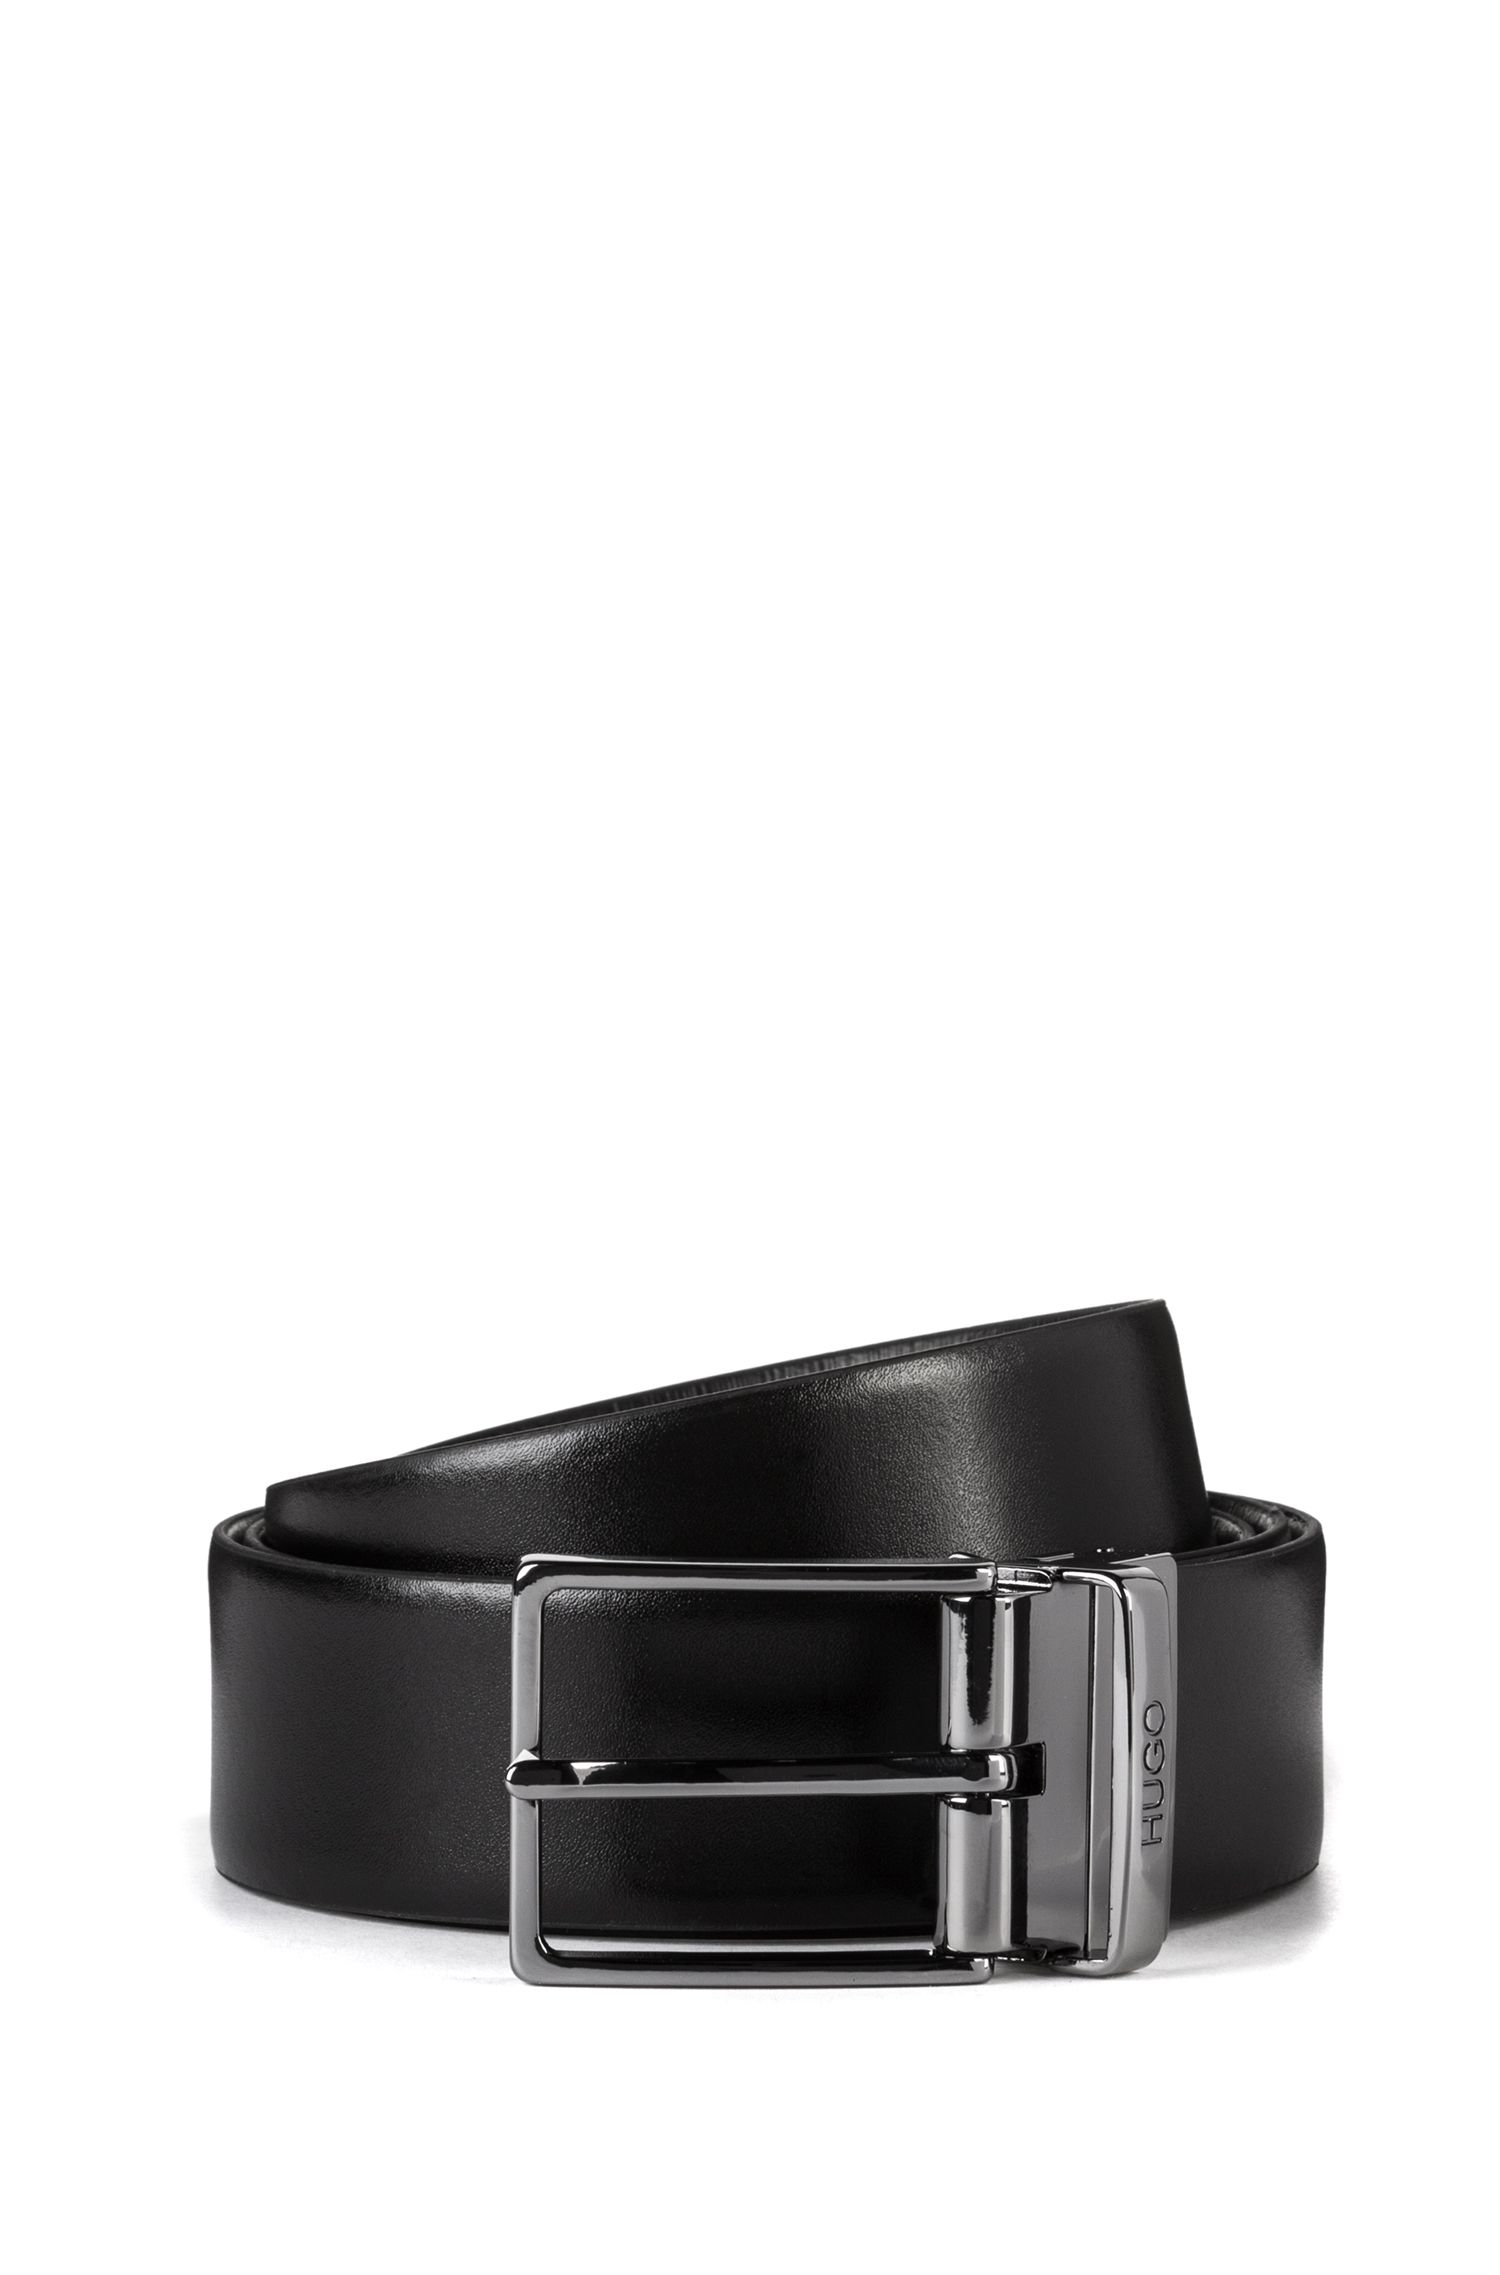 Smooth-leather belt with polished gunmetal buckle, Black